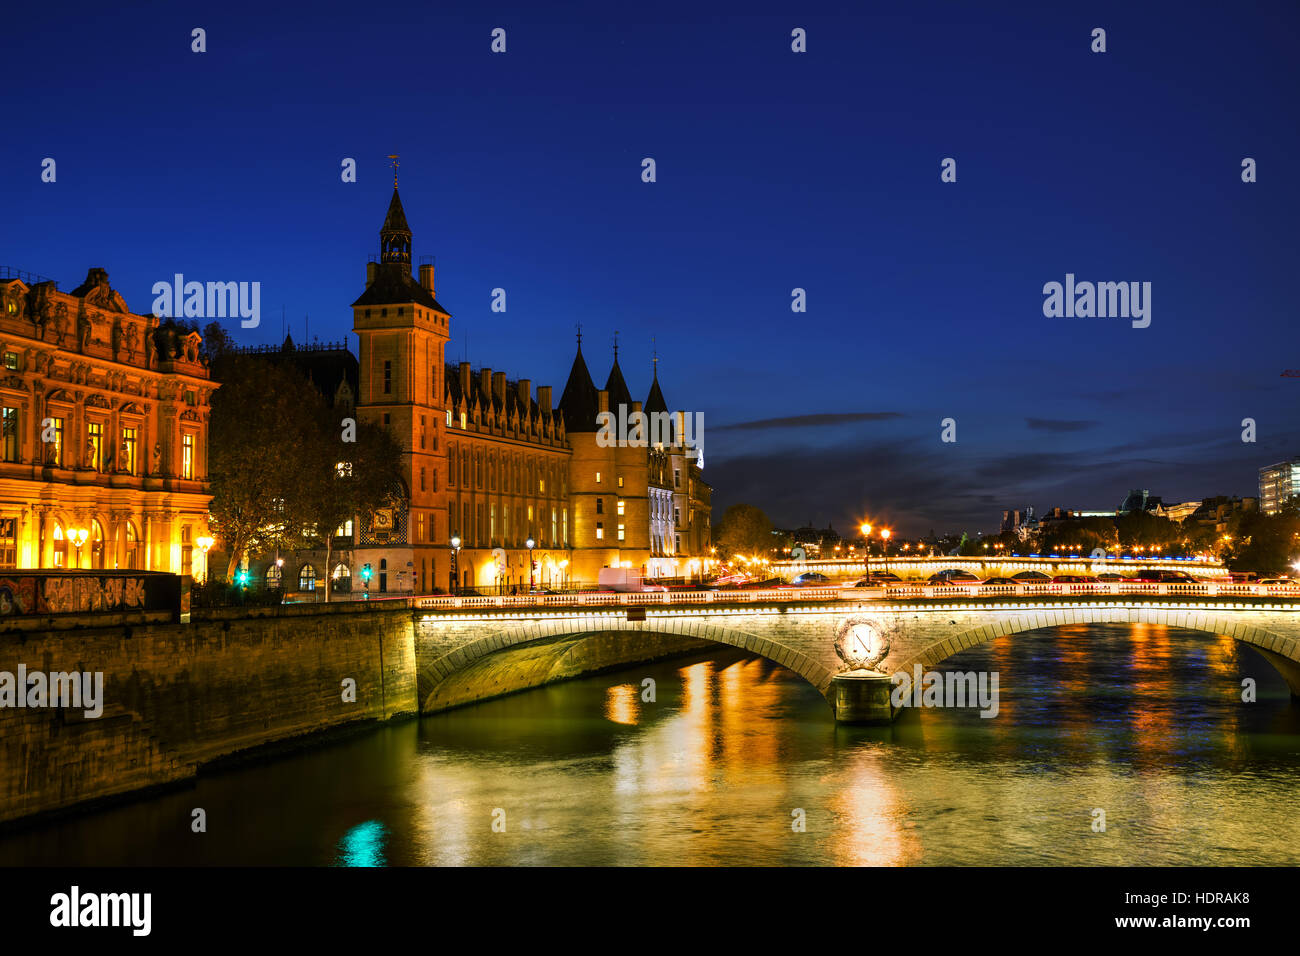 The Conciergerie building in Paris, France in the night Stock Photo